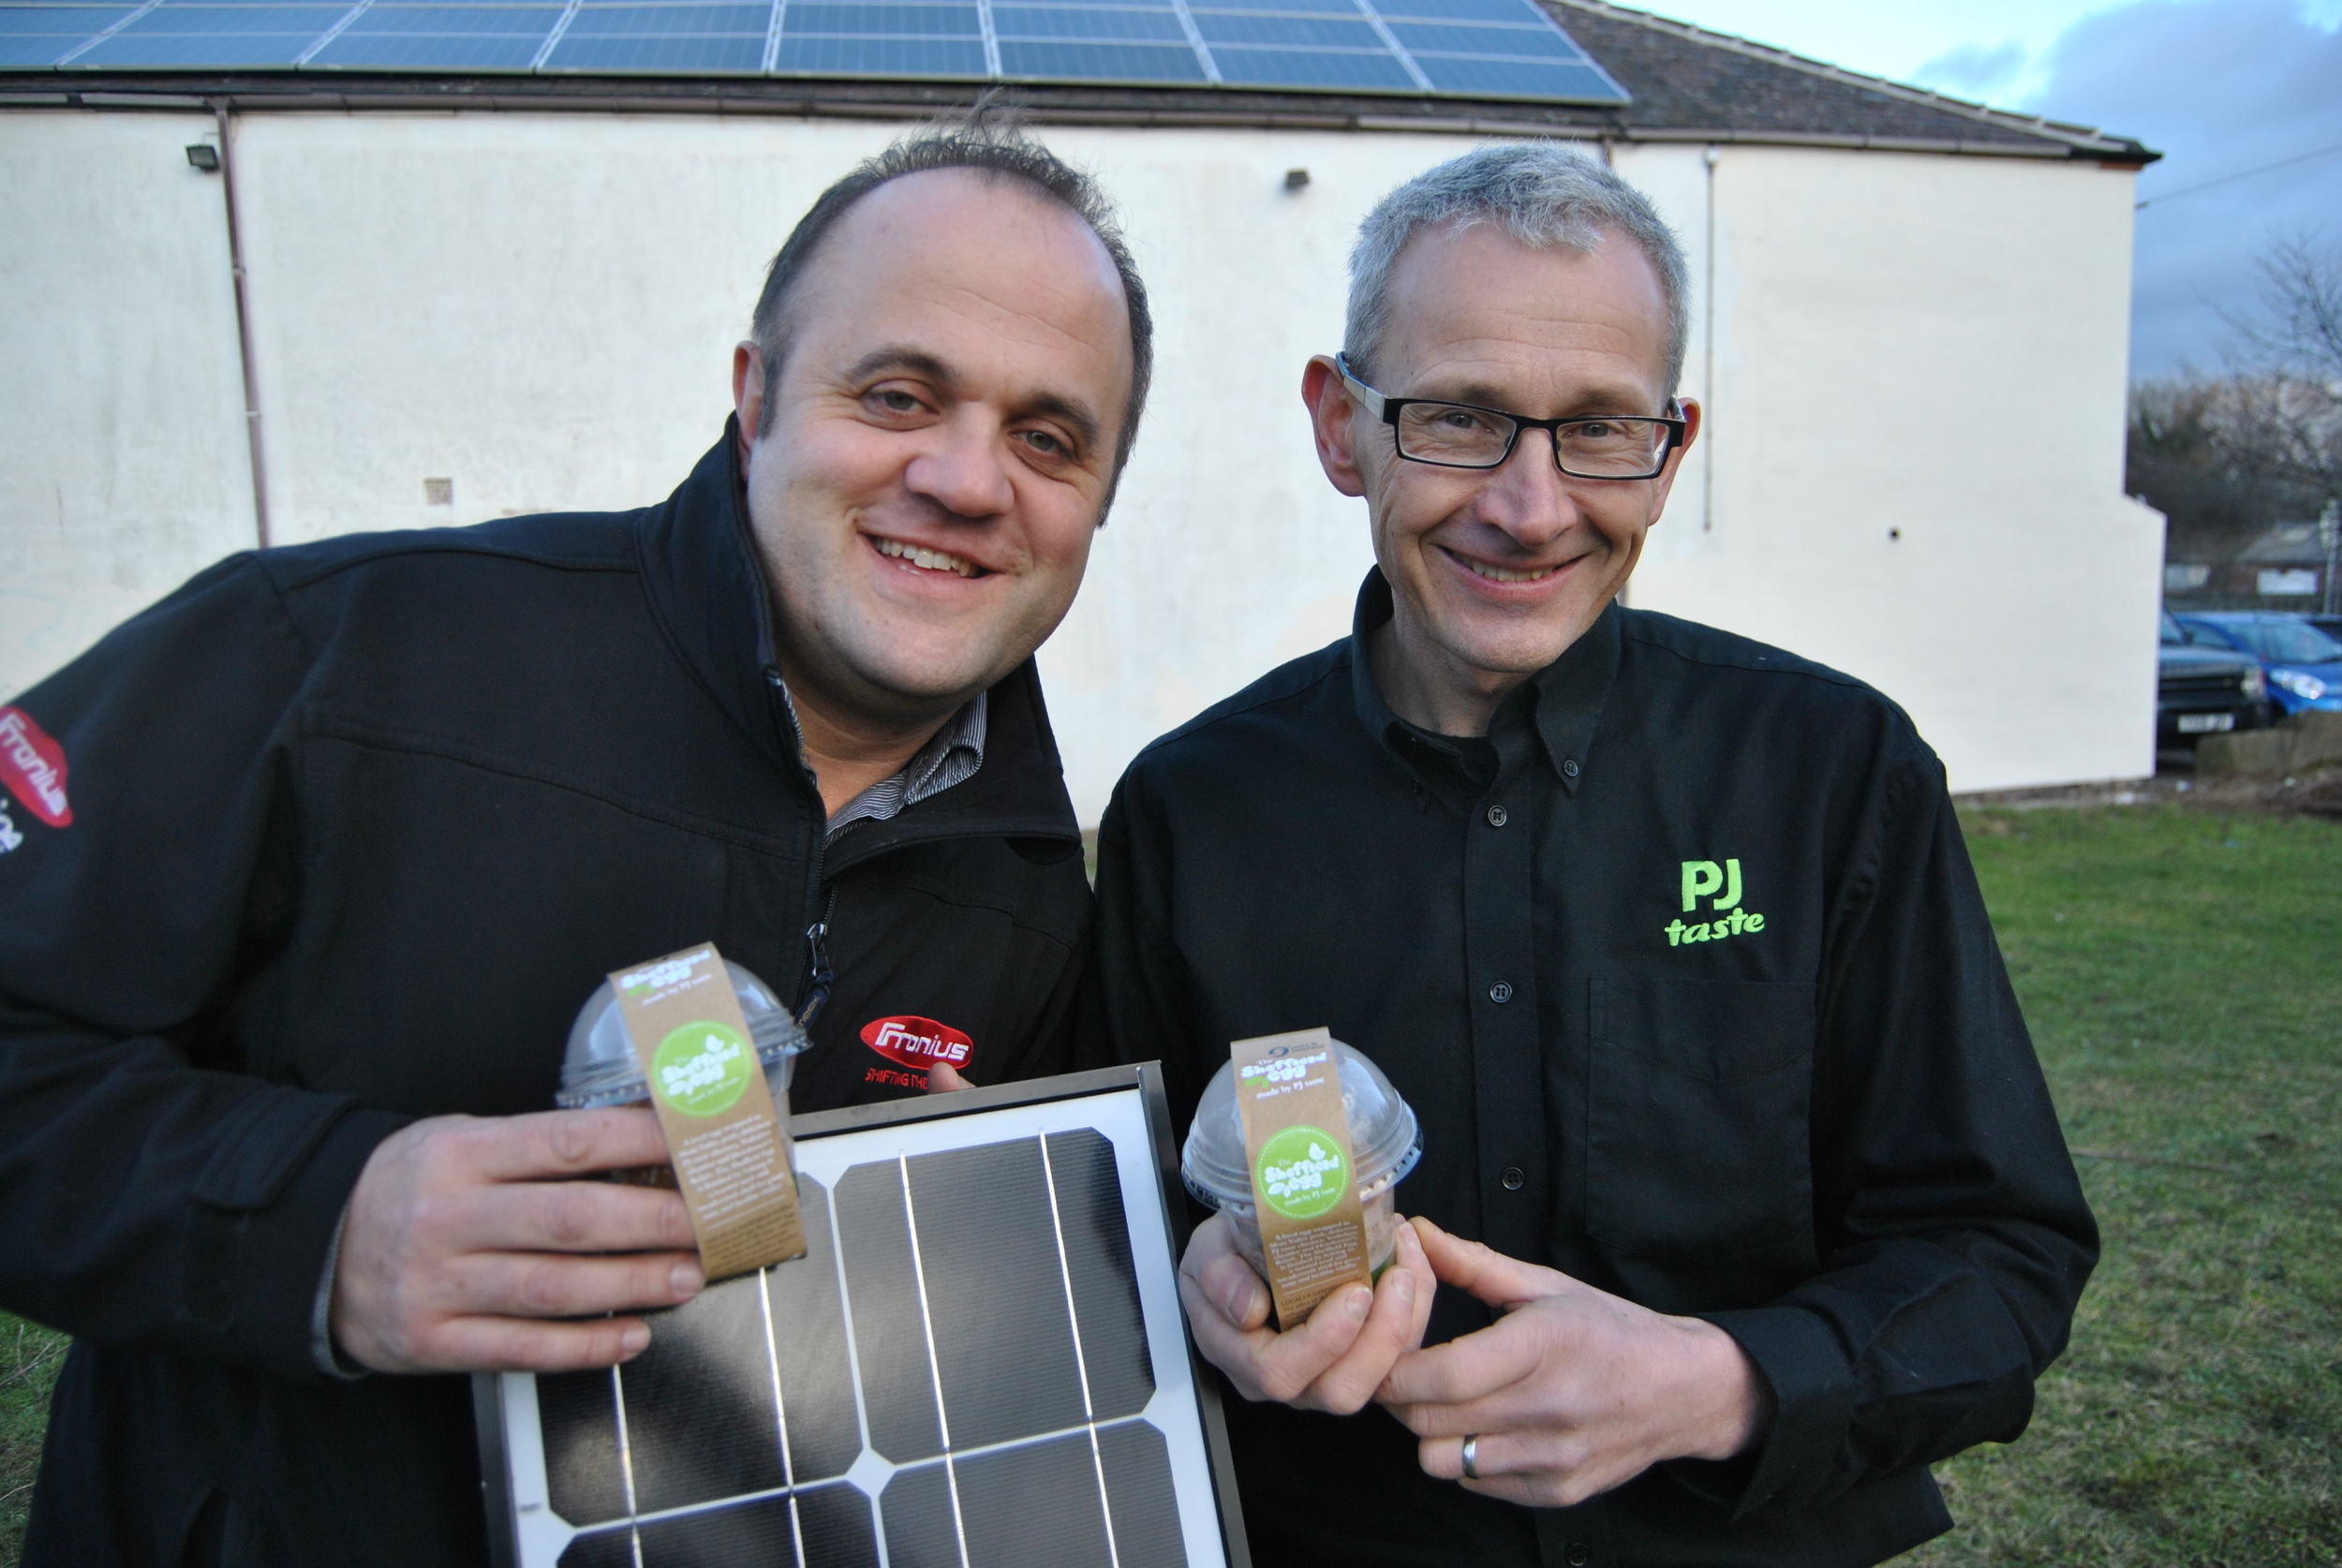 Rob Samuelson from jump energy and peter moulam at pj taste on the completion of the solar install - with our locally sustainable sheffield egg!